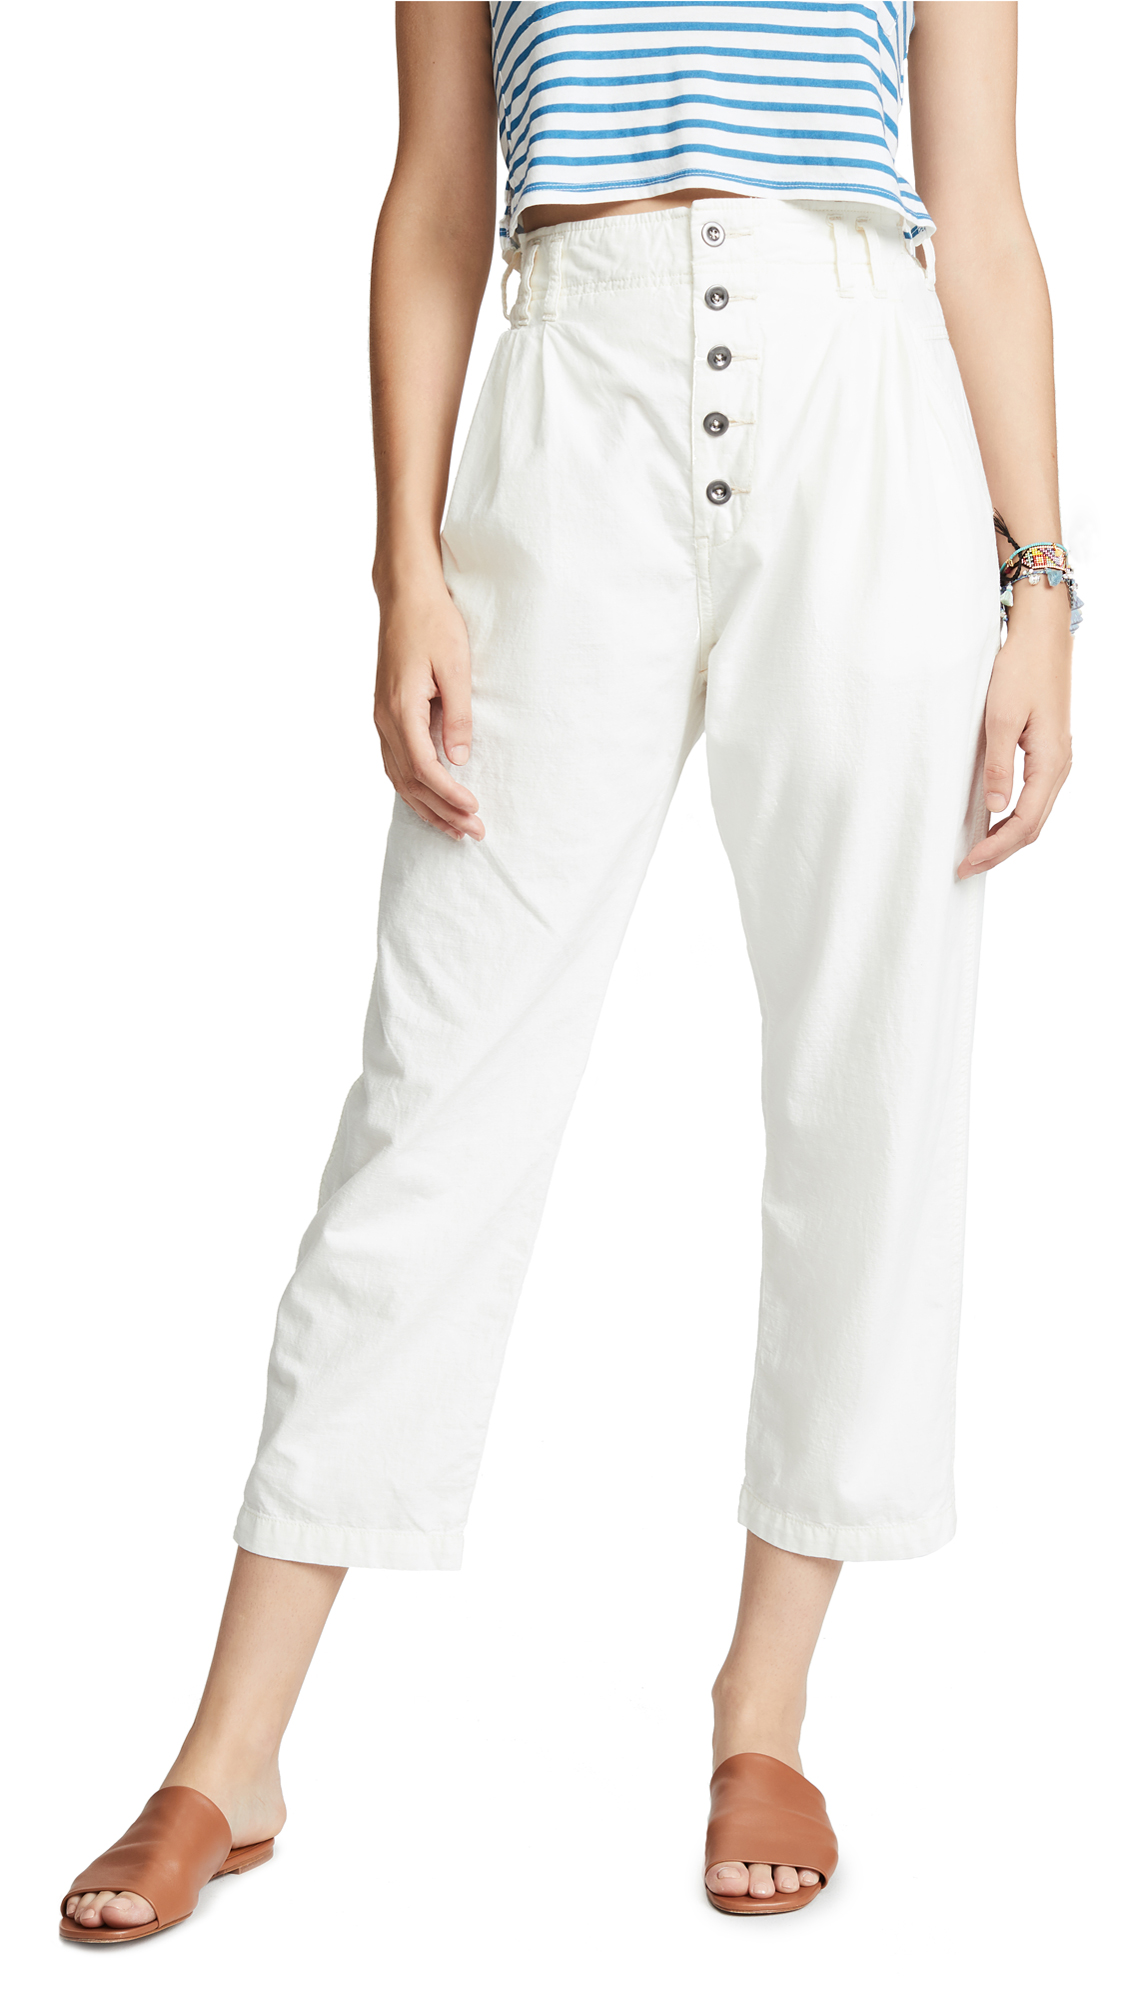 Free People Compass Star Trousers Shopbop D Island Casual Wrinkle Vintage